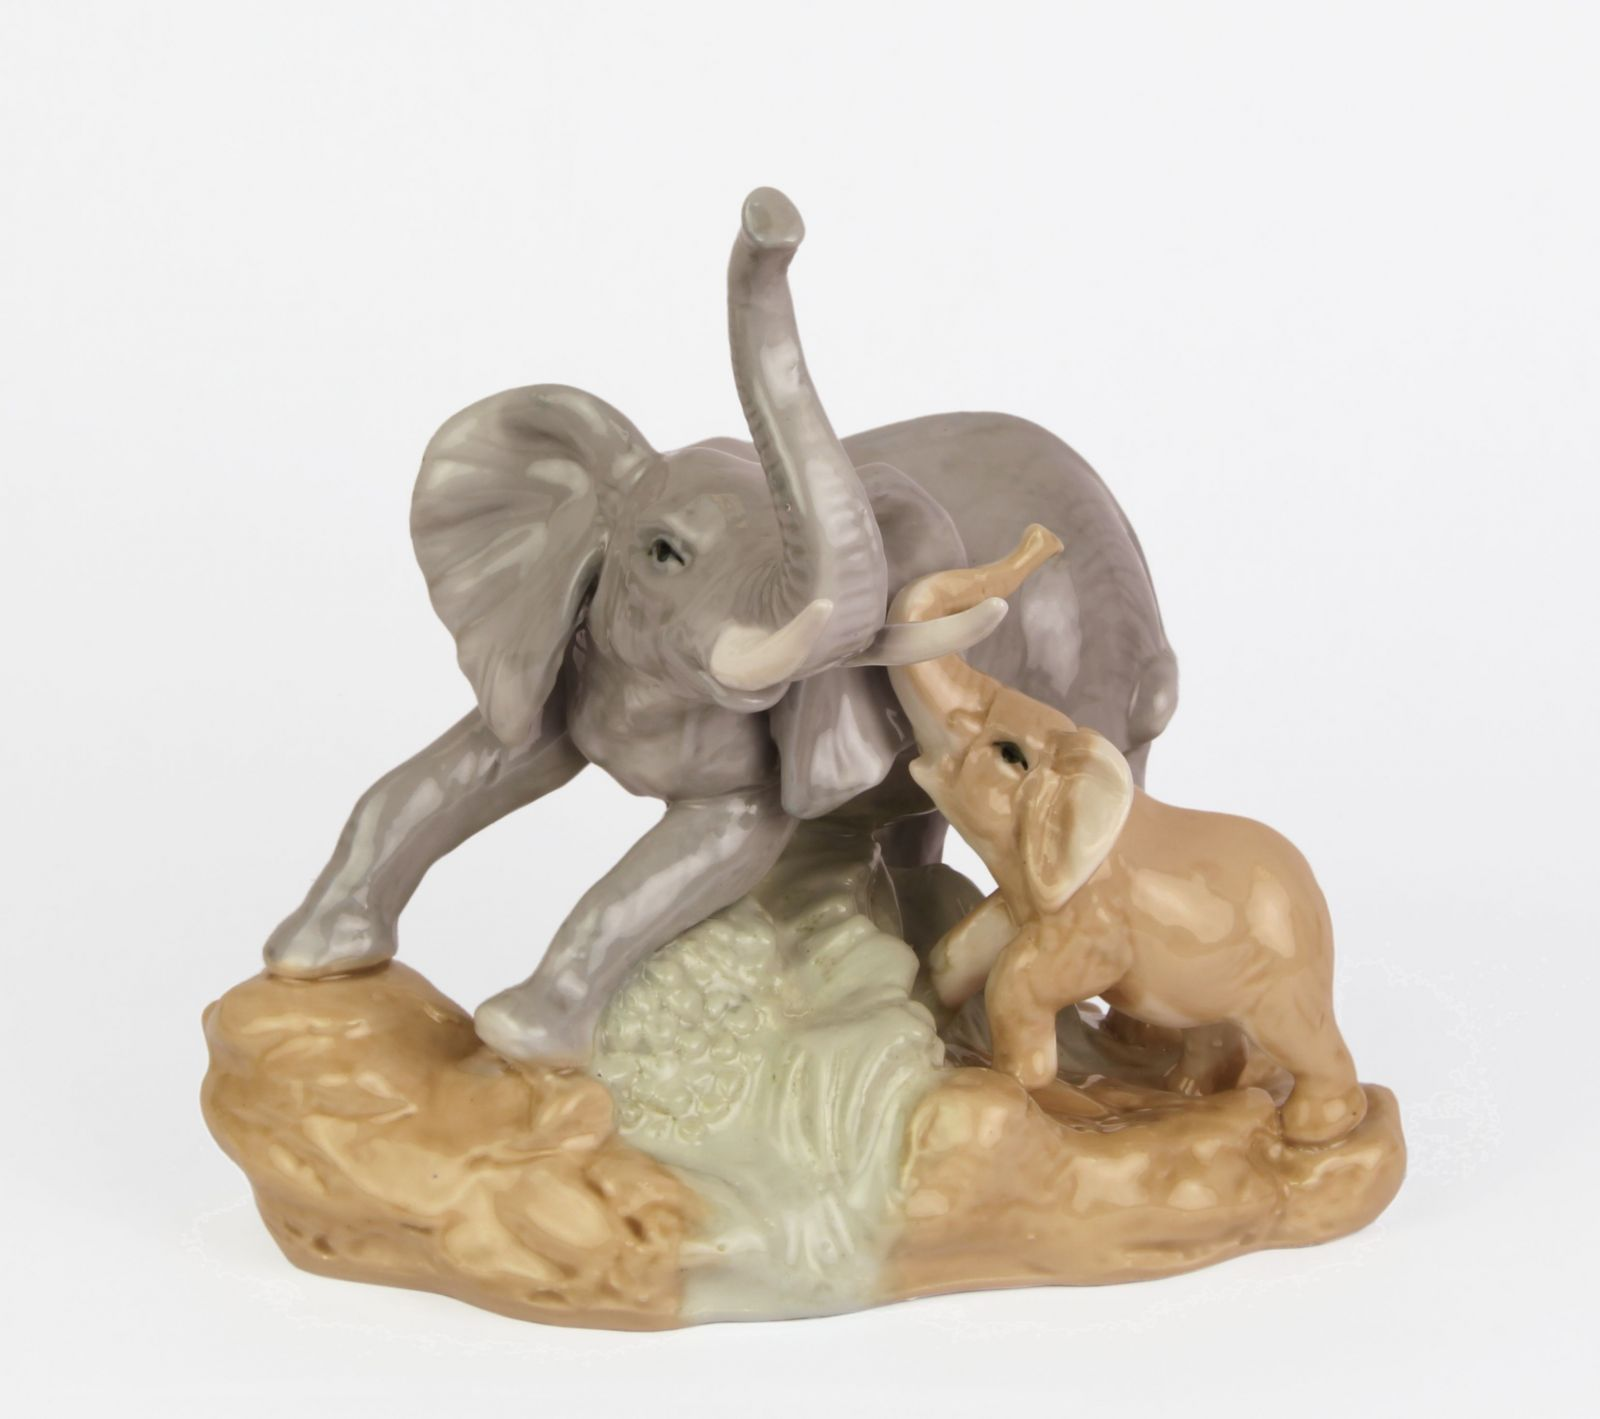 a Statue of an elephant with a child made of porcelain BrokInCZ